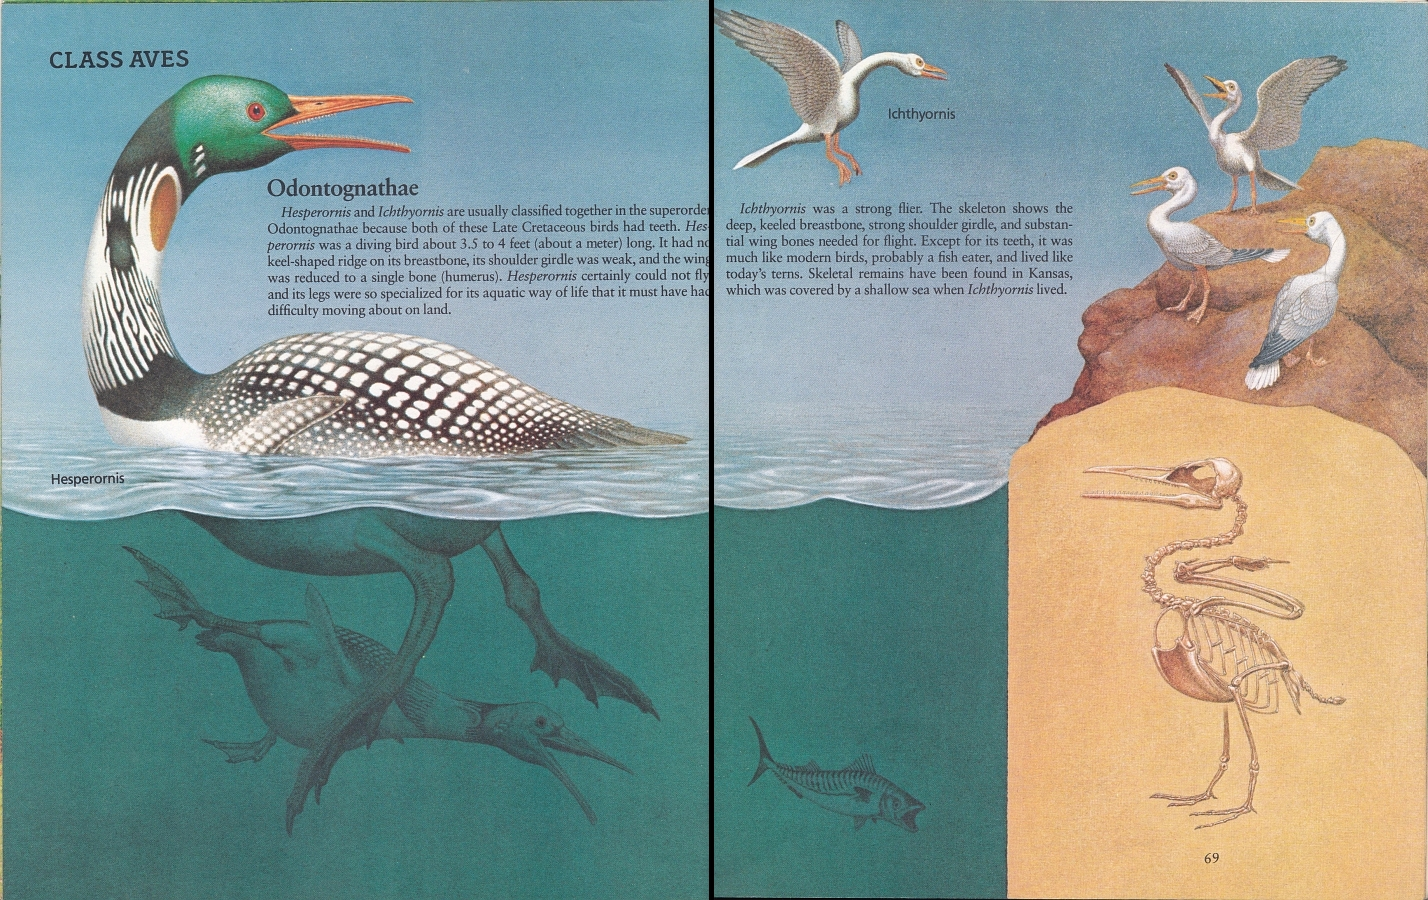 Hesperornis and Ichthyornis by Peter Zallinger